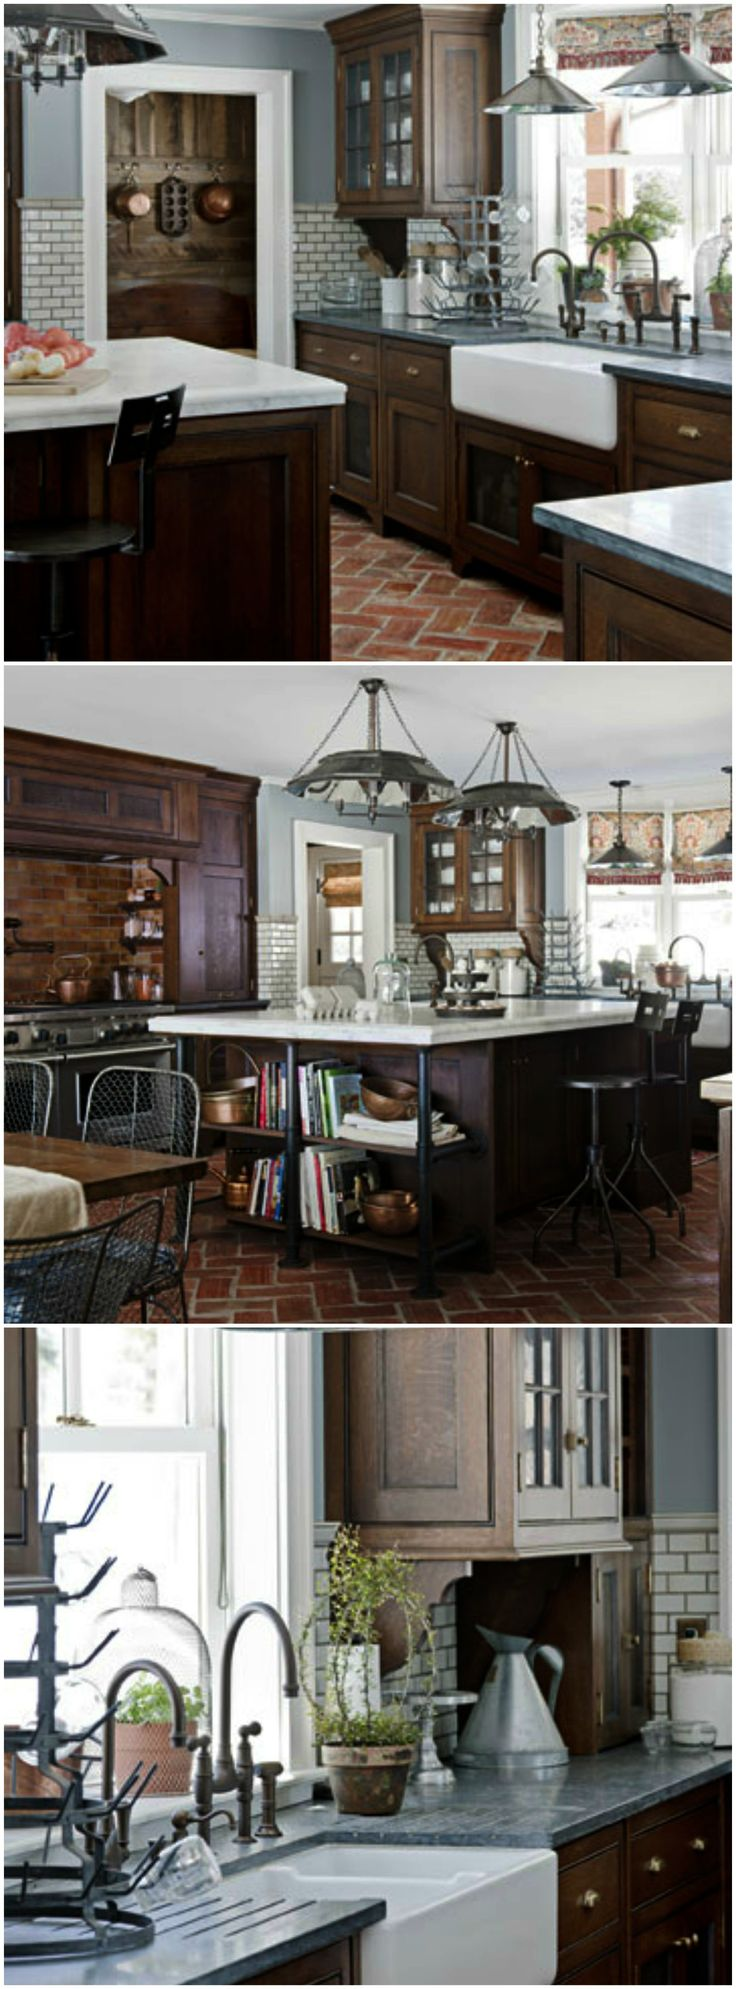 Modern farmhouse kitchen with quatersawn oak cabinets and industrial accents.